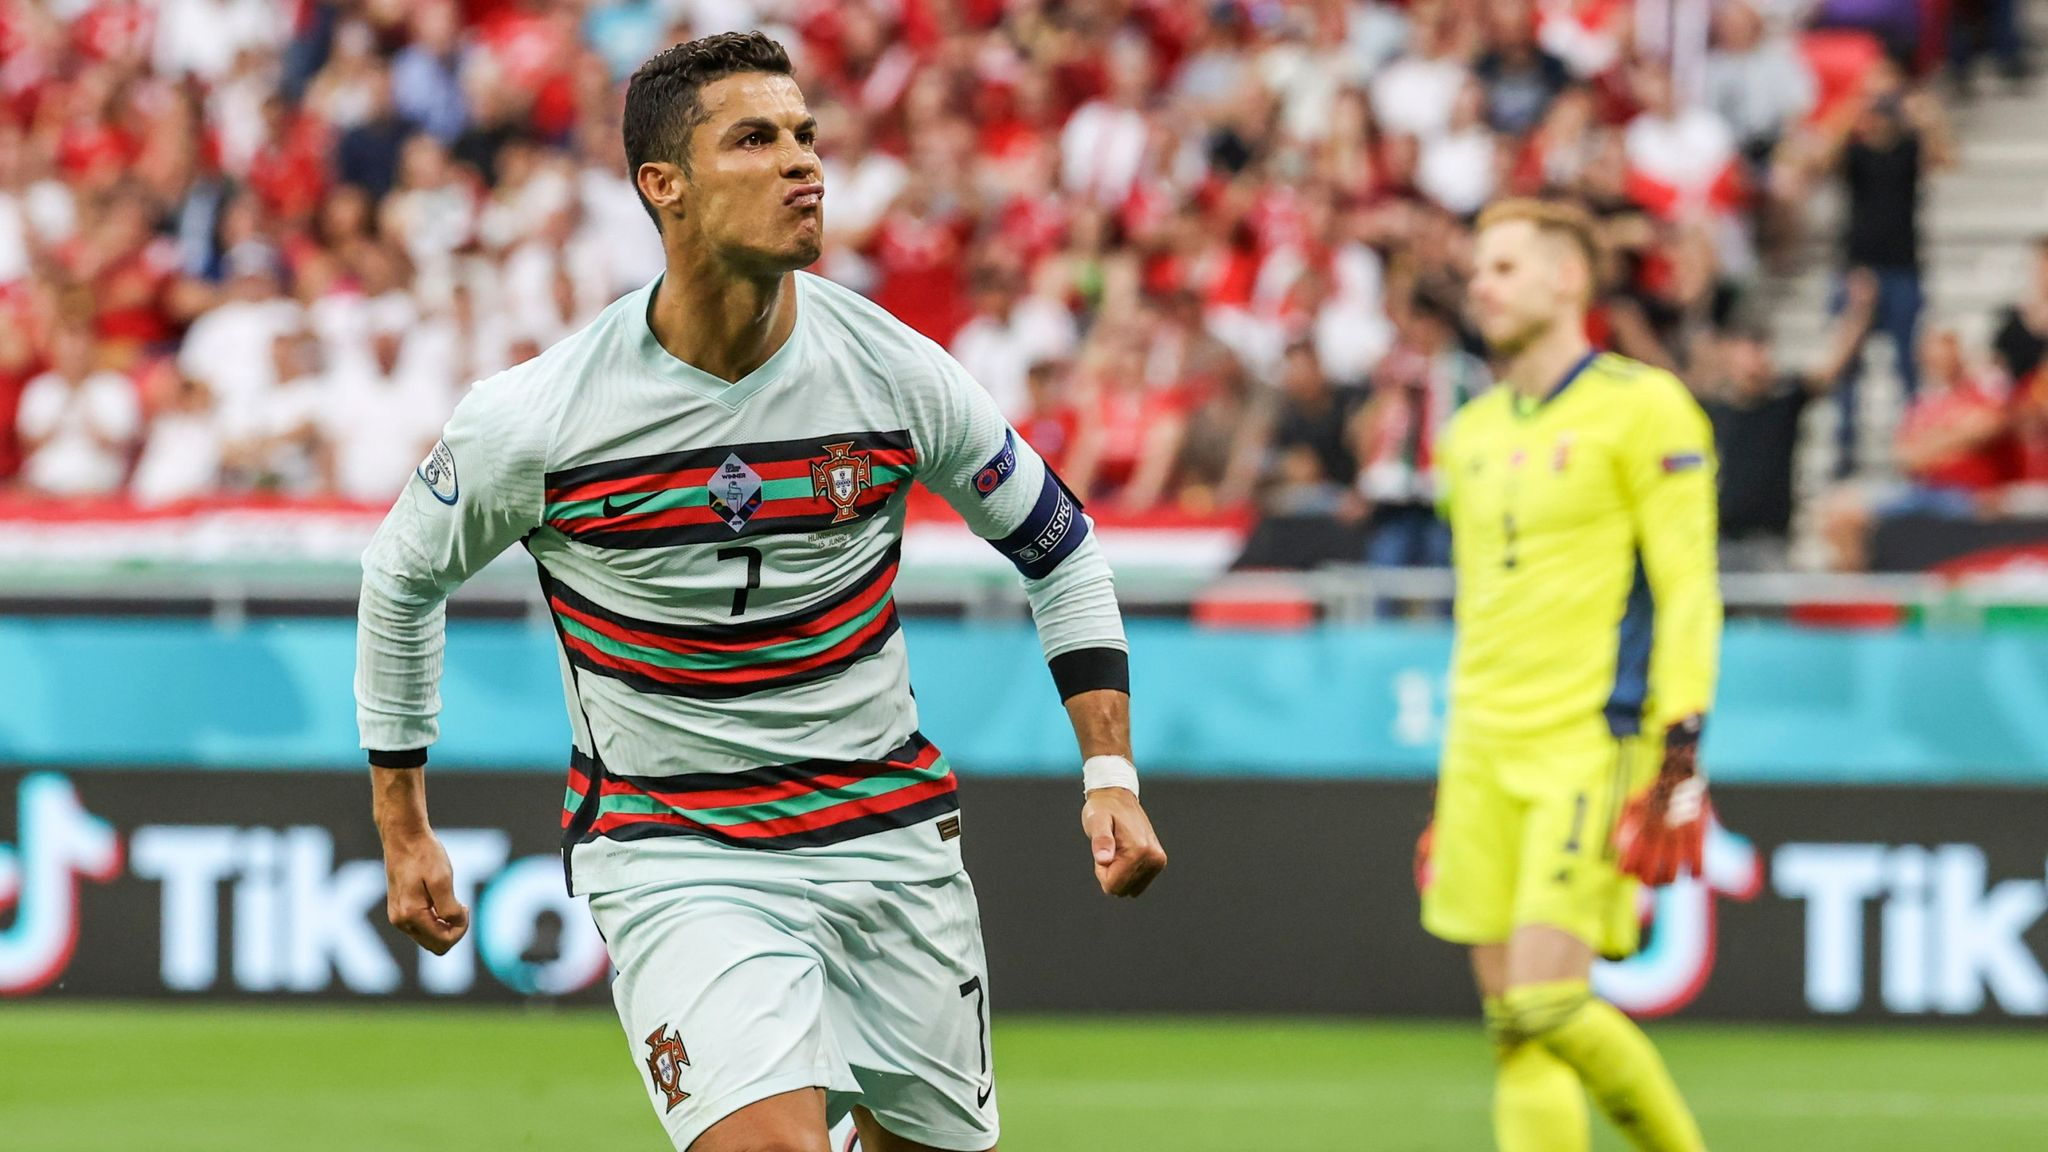 Hungary 0 - 3 Portugal - Match Report & Highlights